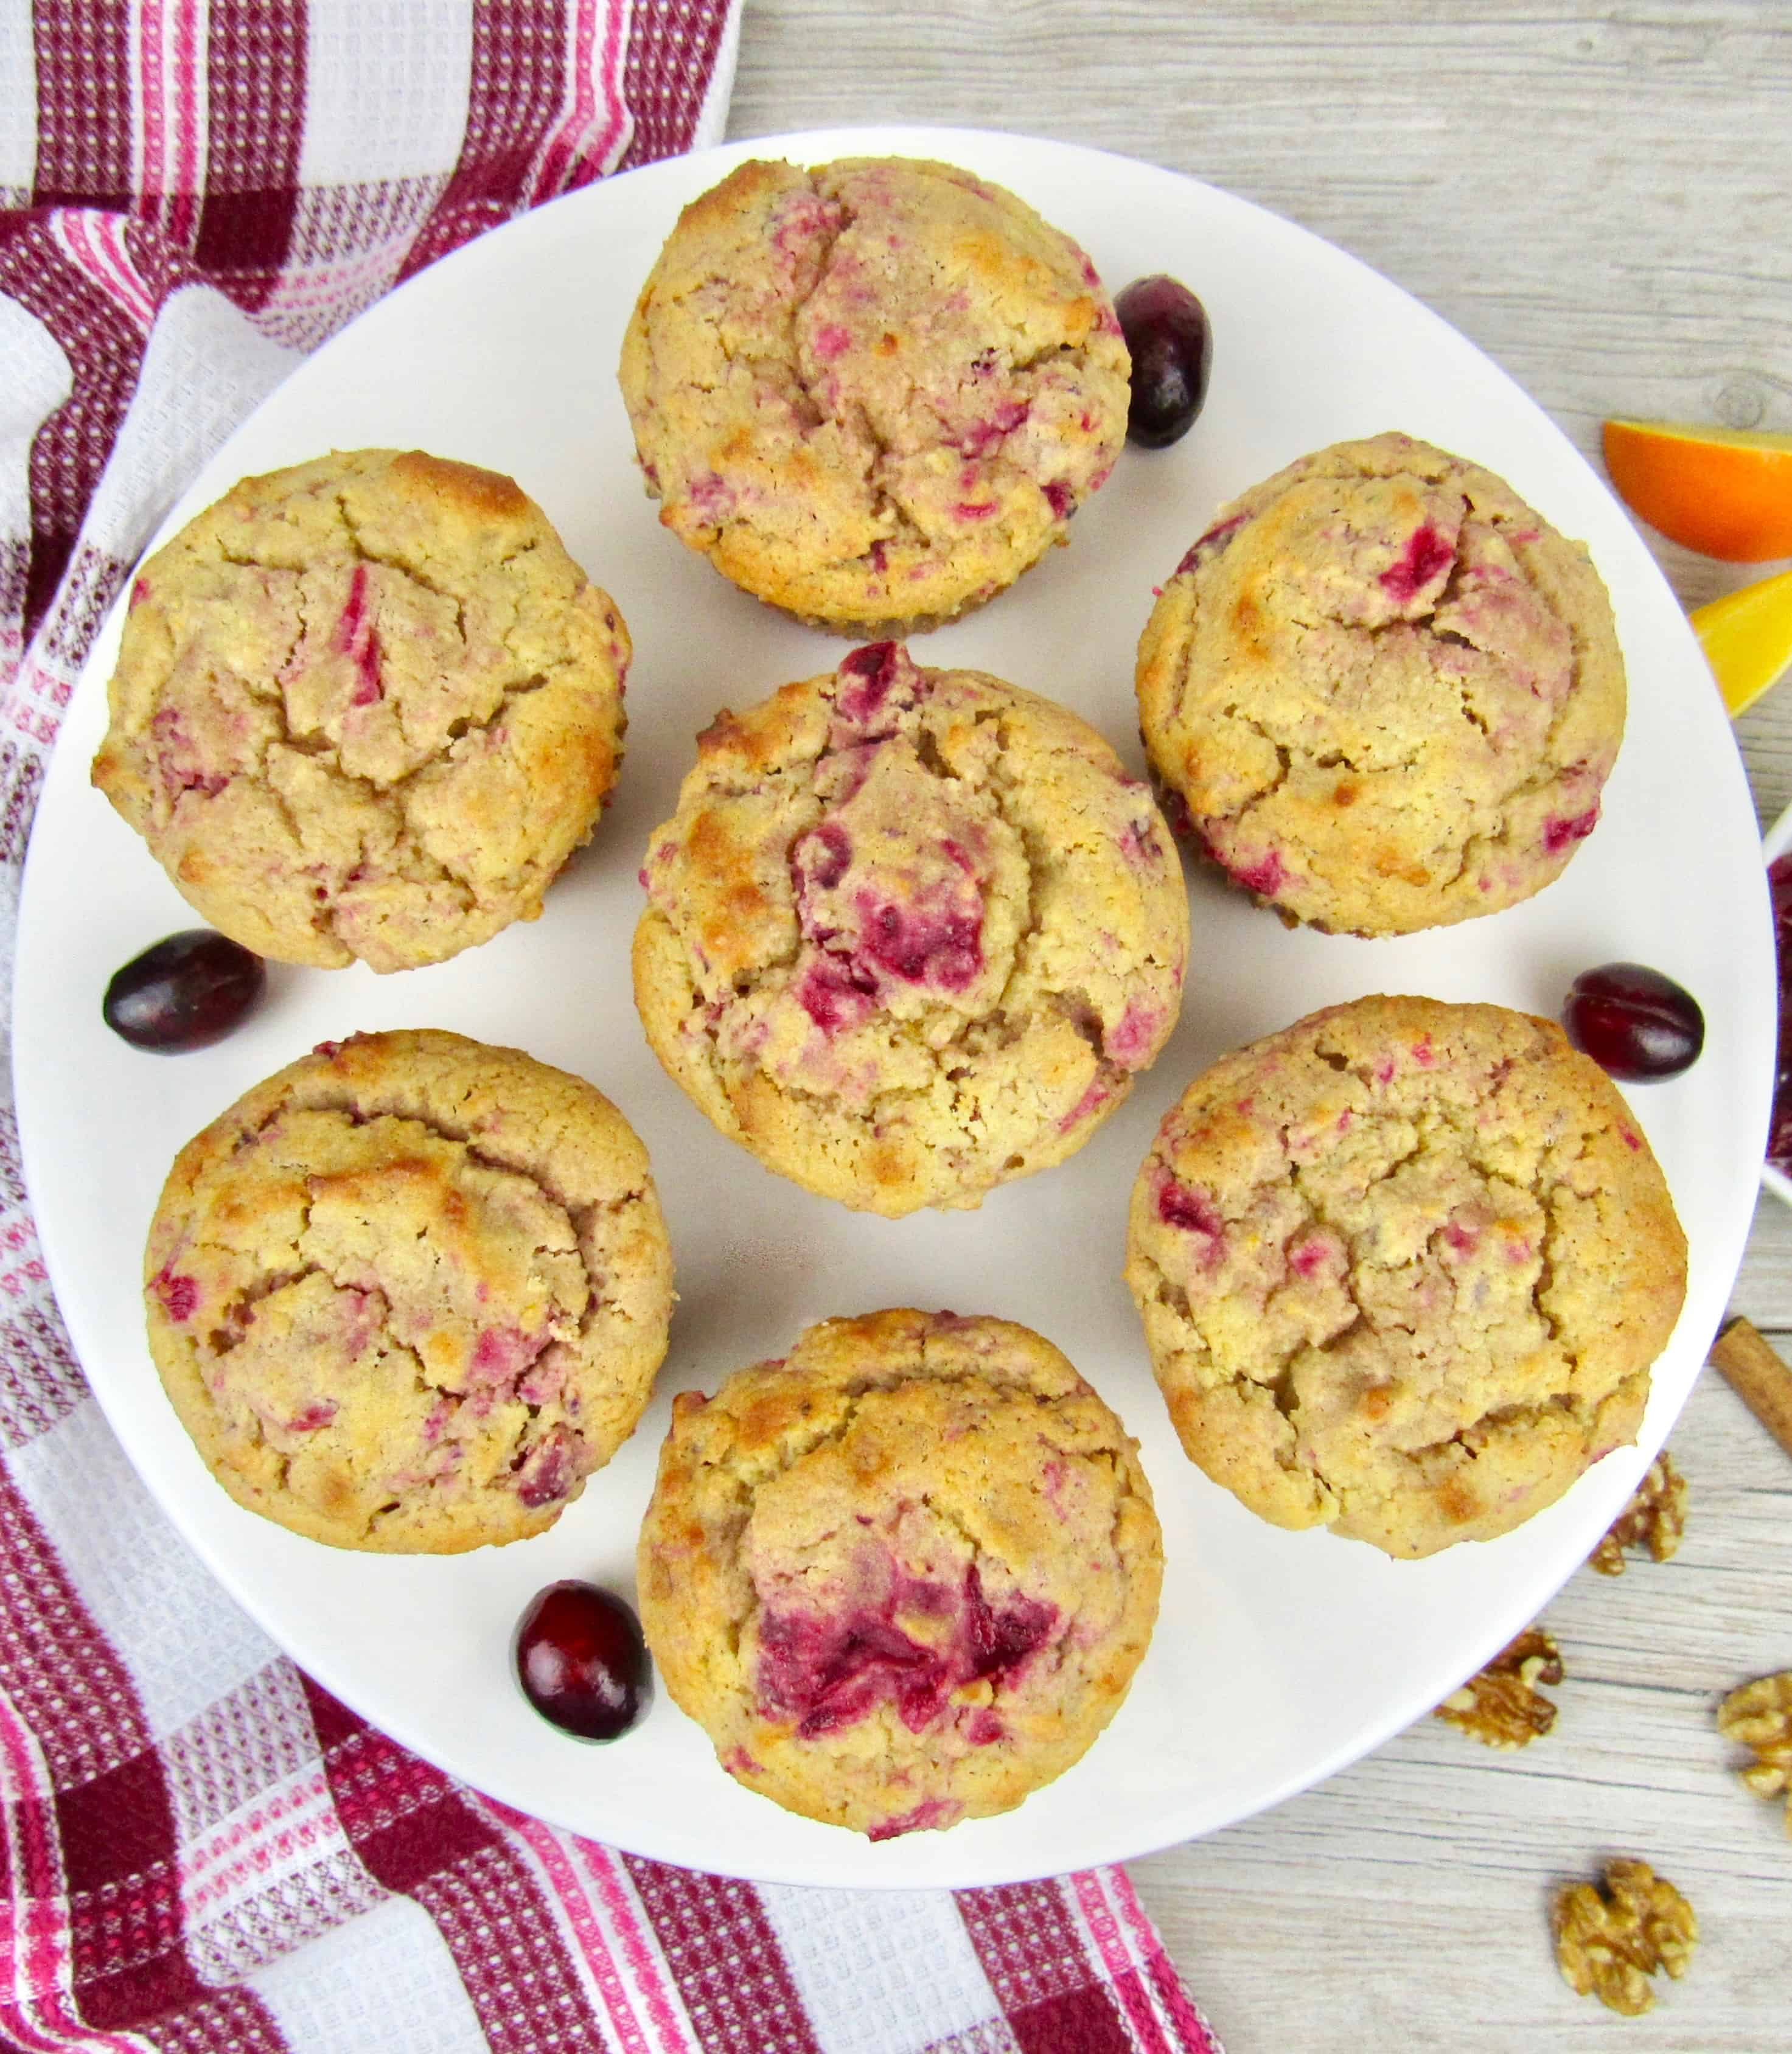 overhead view of 7 cranberry walnut muffins on white plate